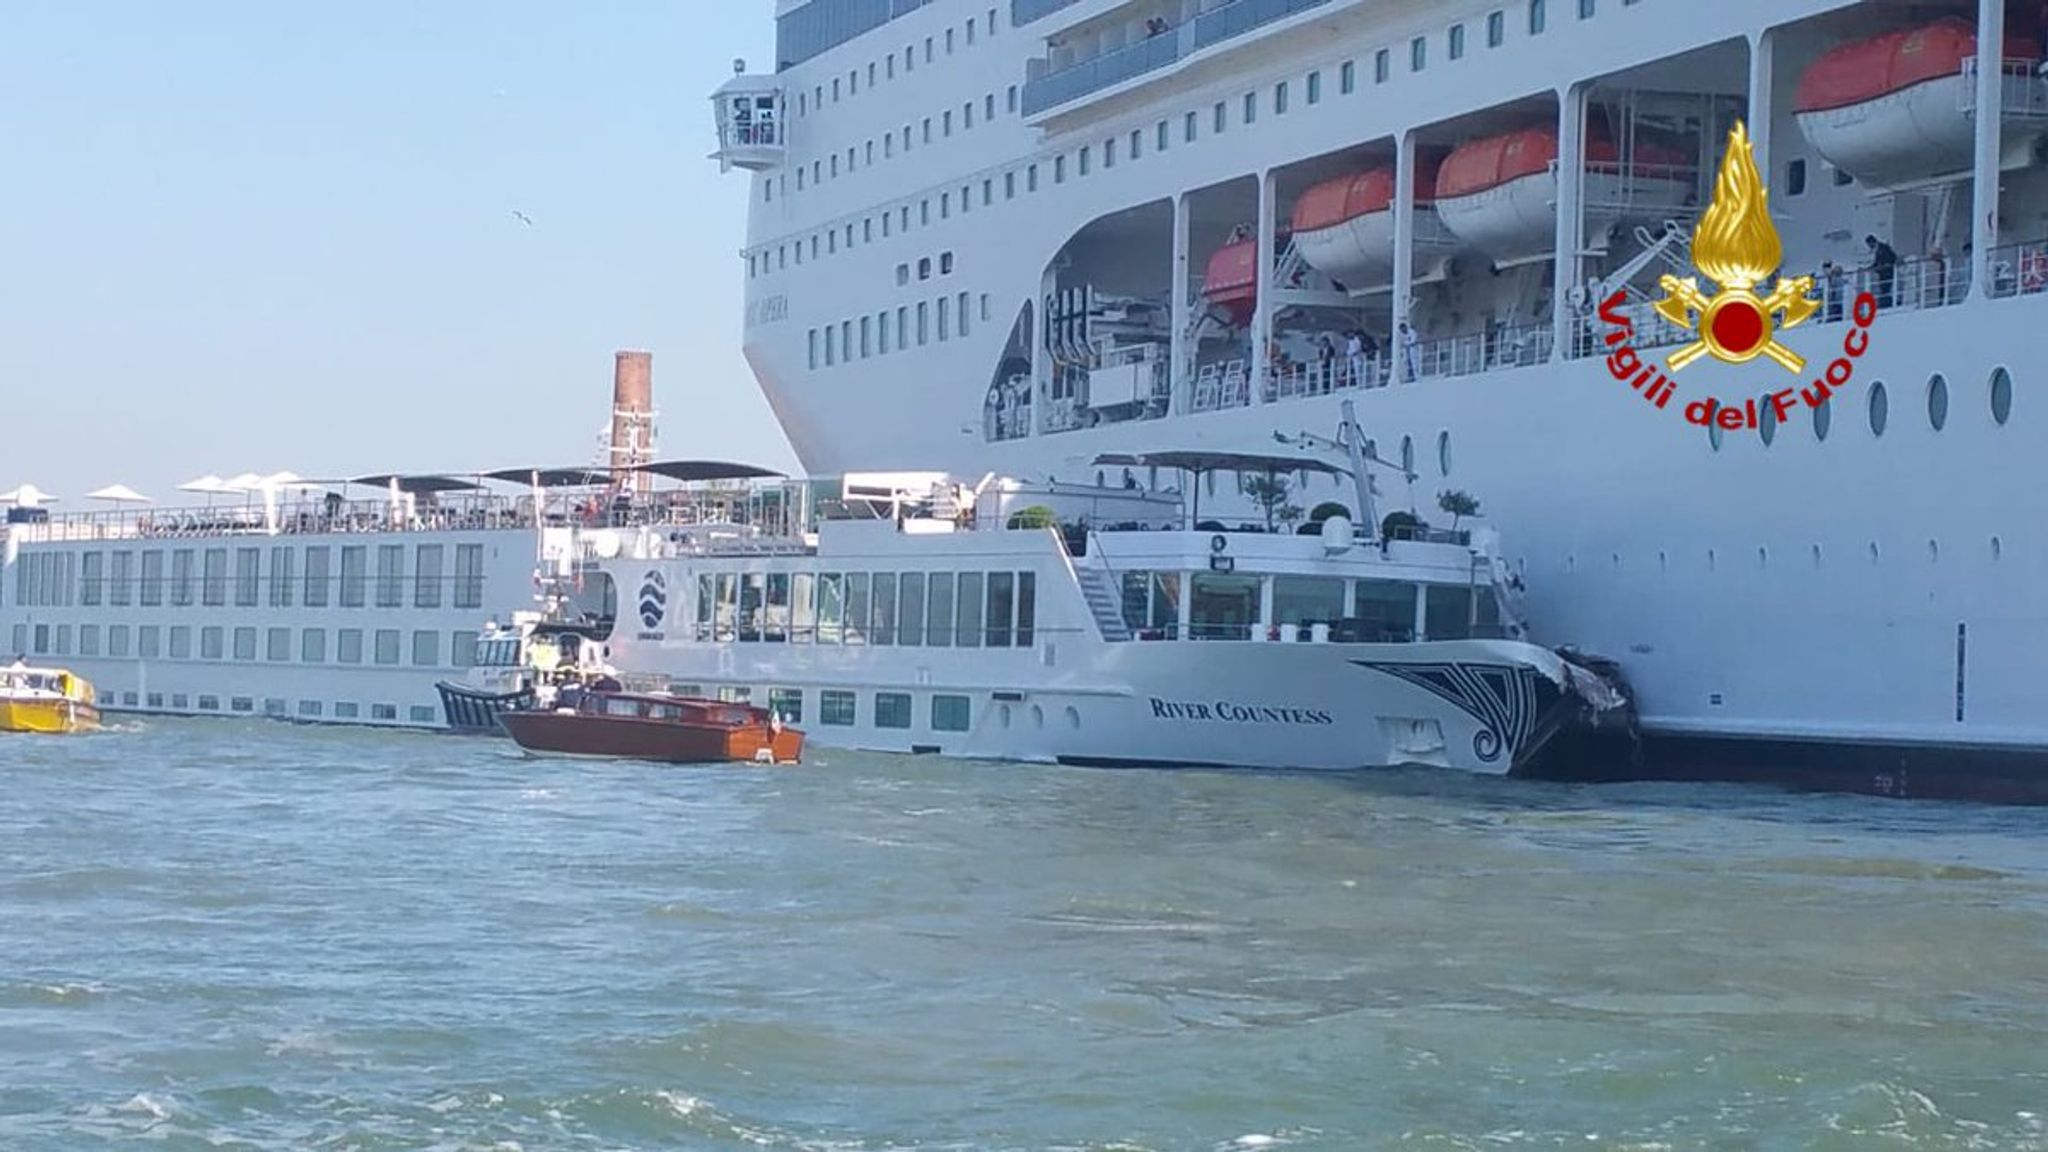 Cruise ship crashes into dock and tourist boat in Venice